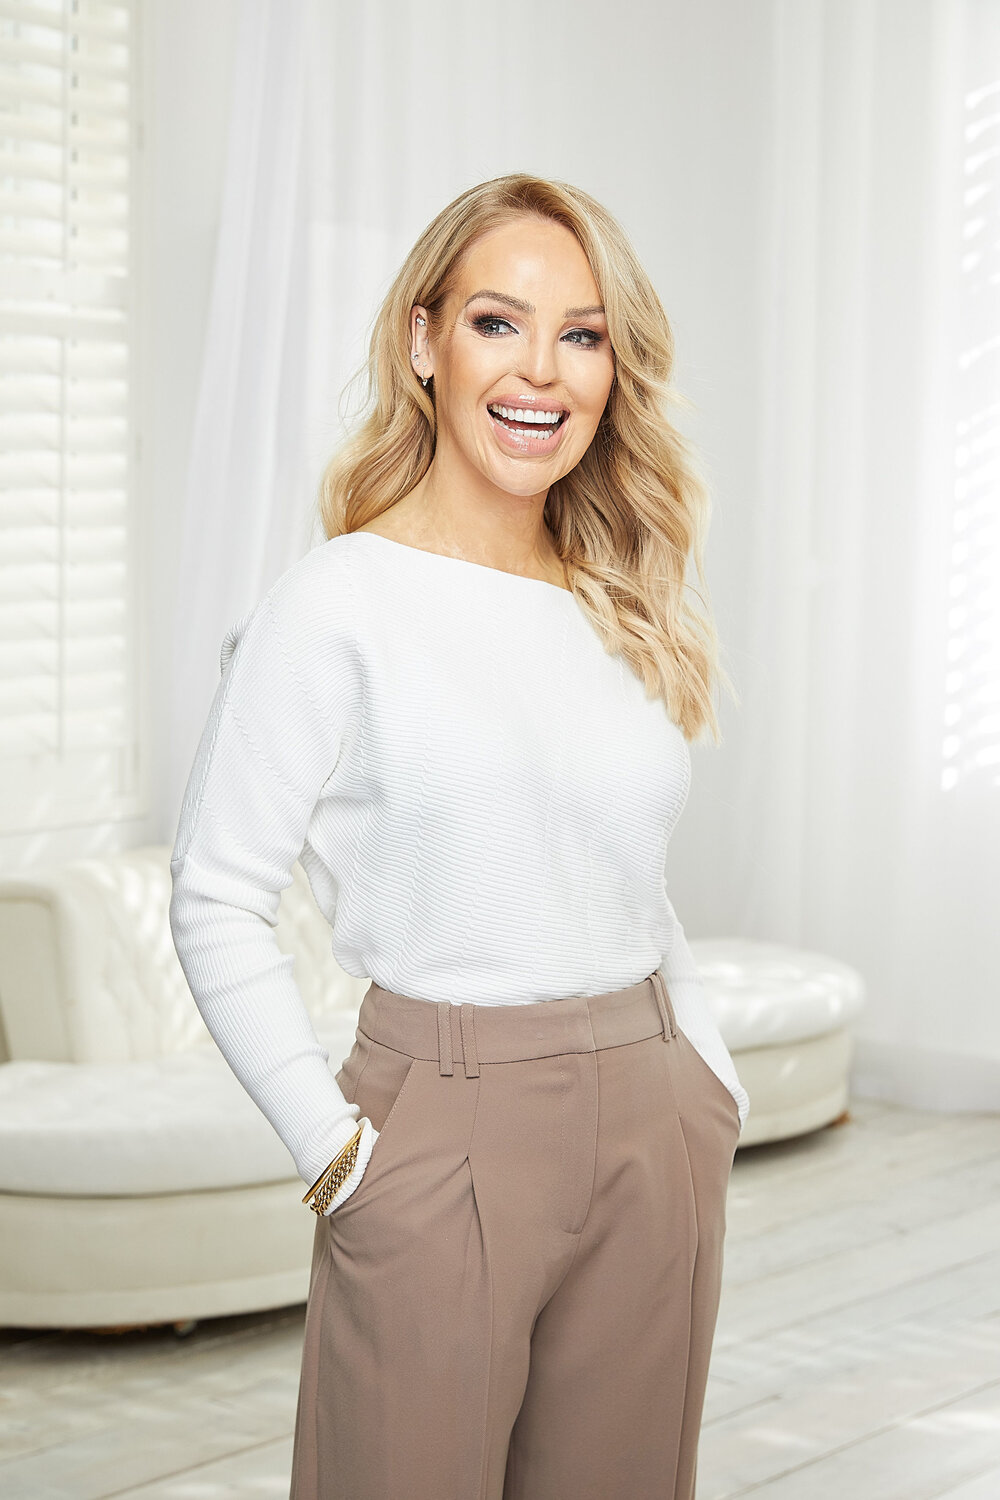 Katie Piper On Taking Care Of Your Mental Health